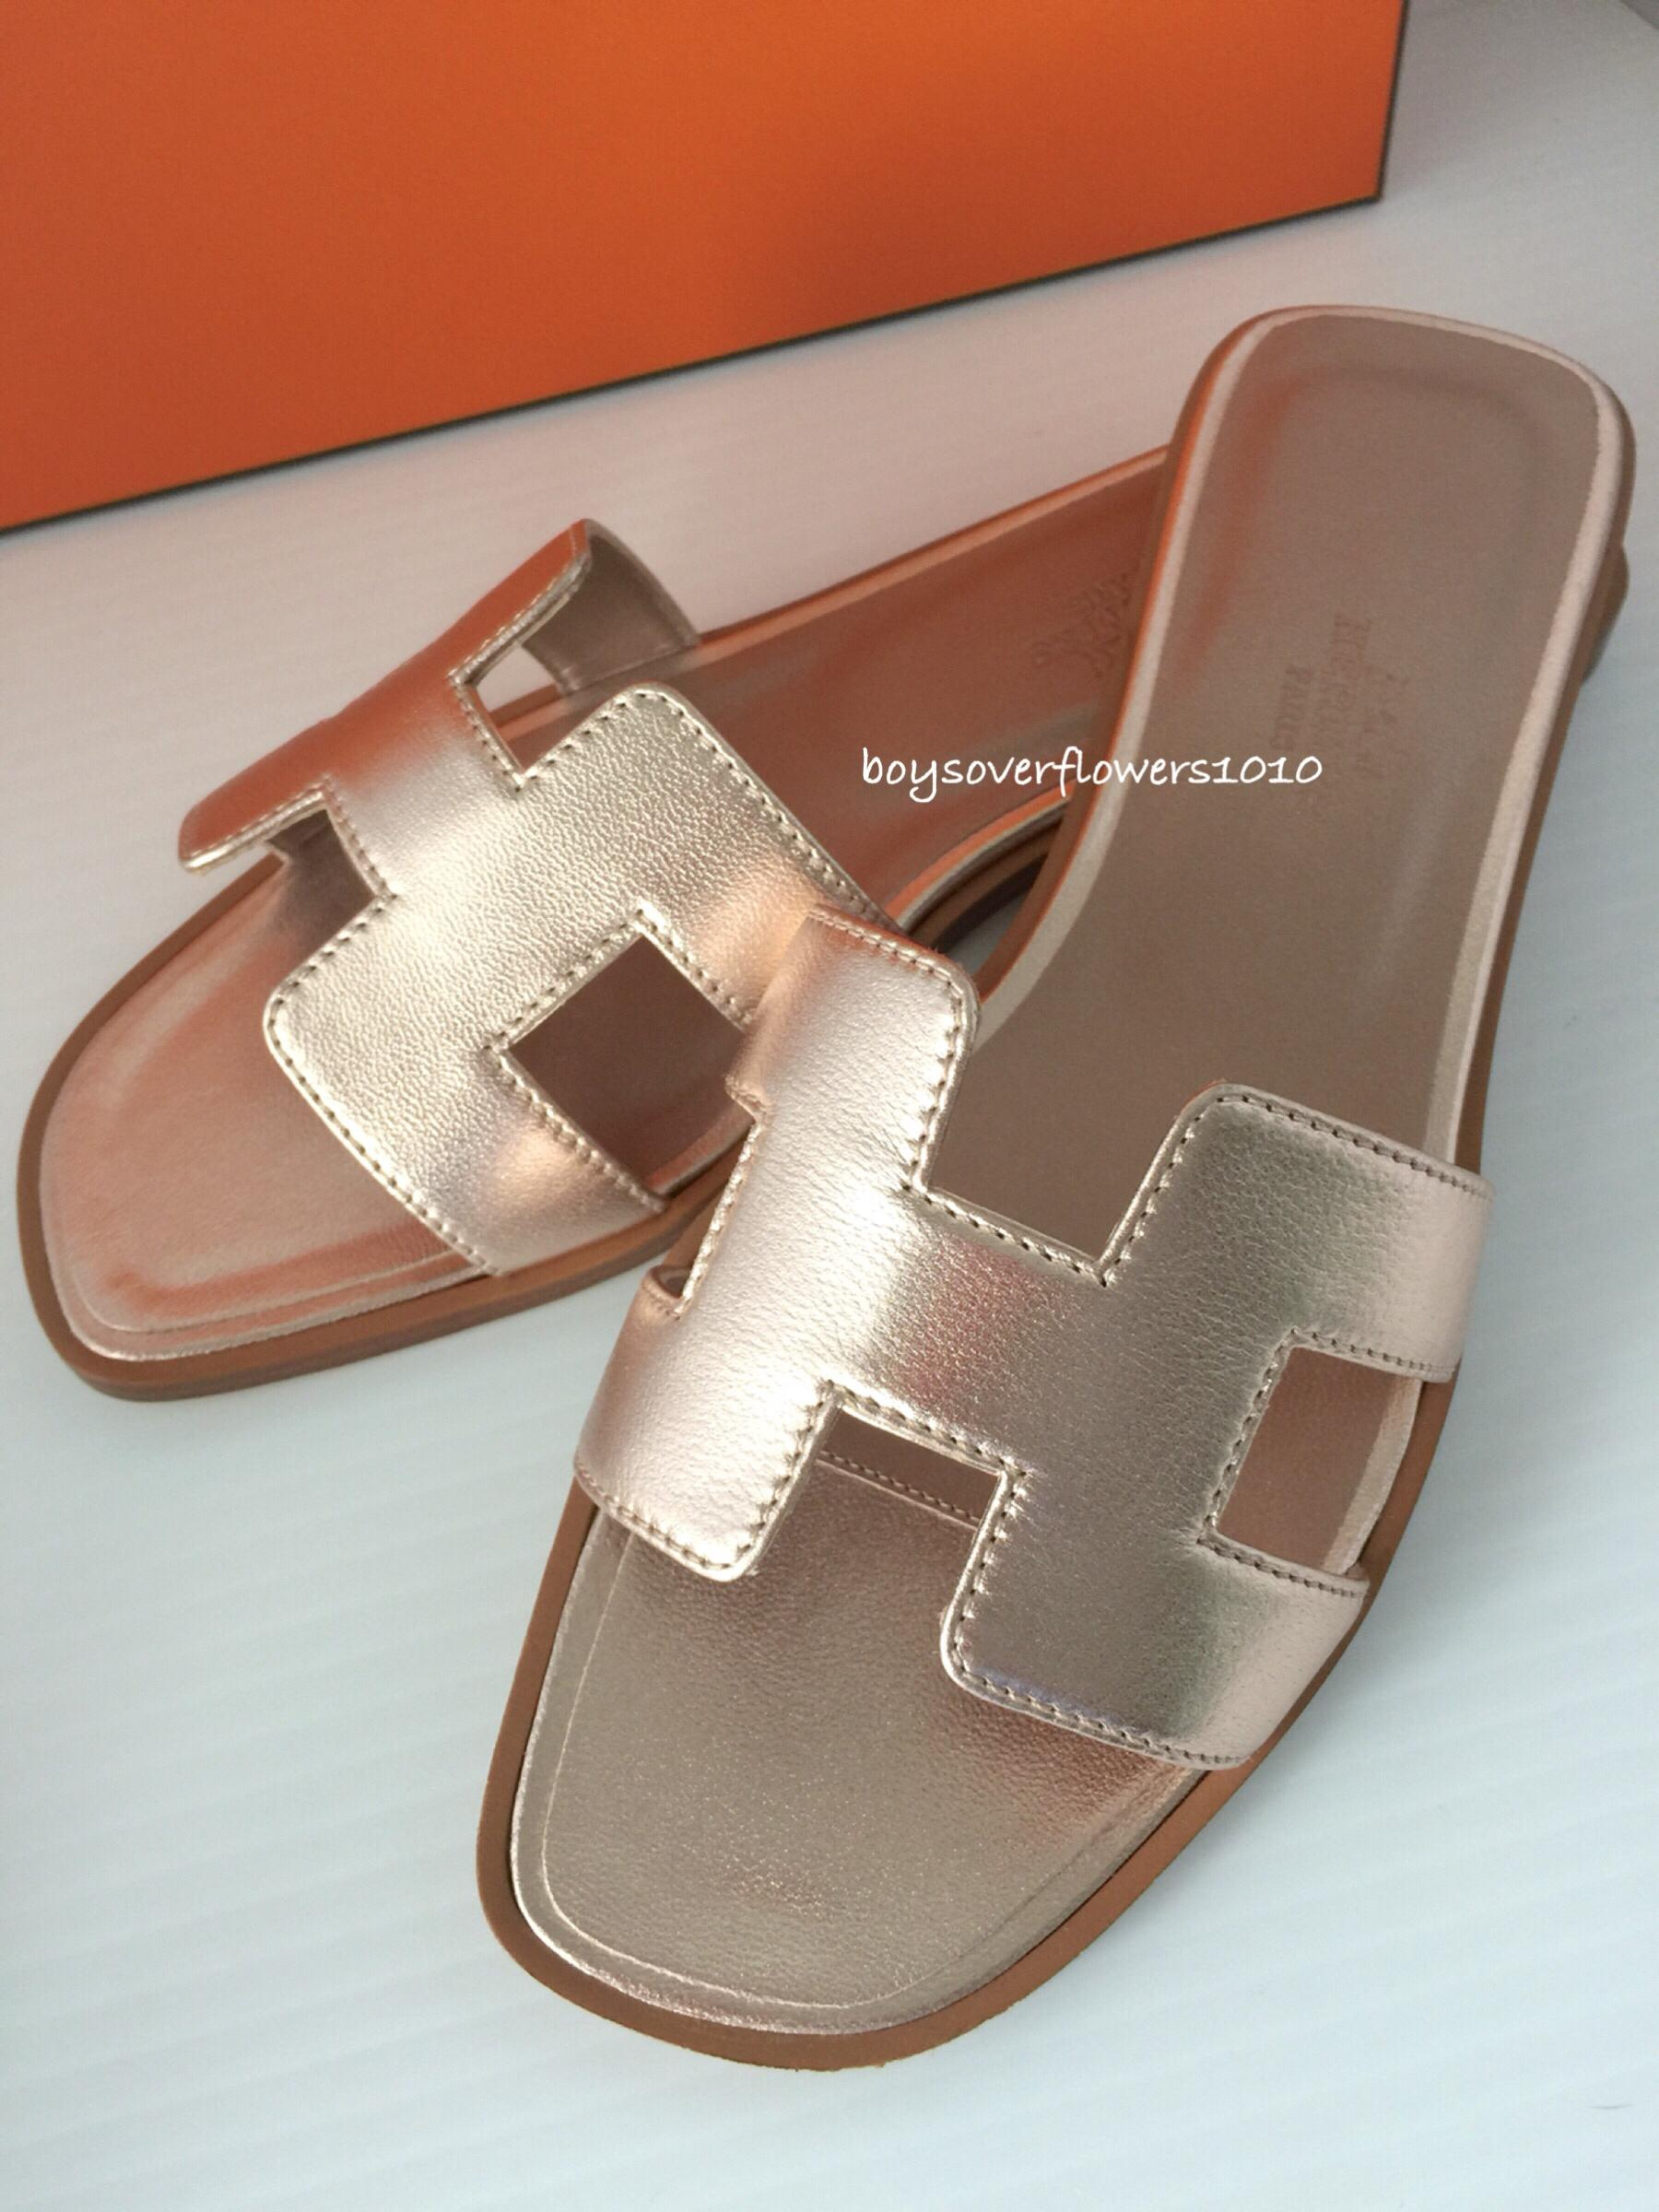 Hermès Metallic Leather Flats amazon for sale shopping online original best sale free shipping 2014 A3bmiF